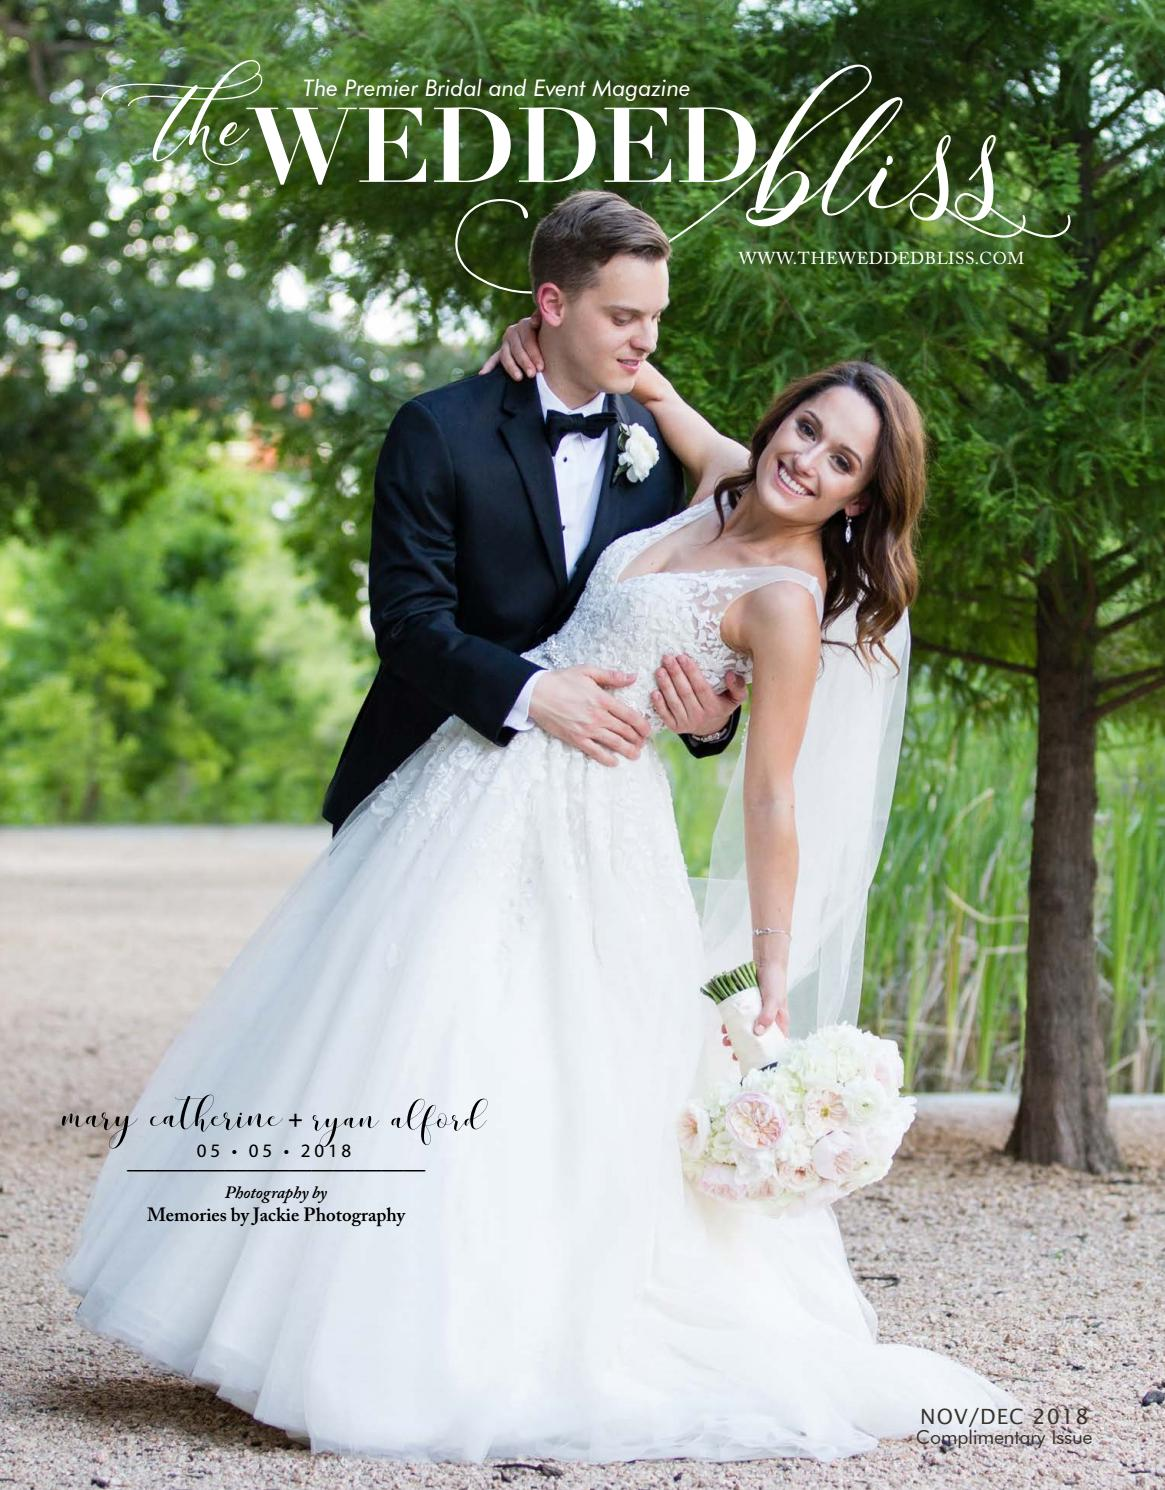 The Wedded Bliss November/December 2018 by The Wedded Bliss - issuu